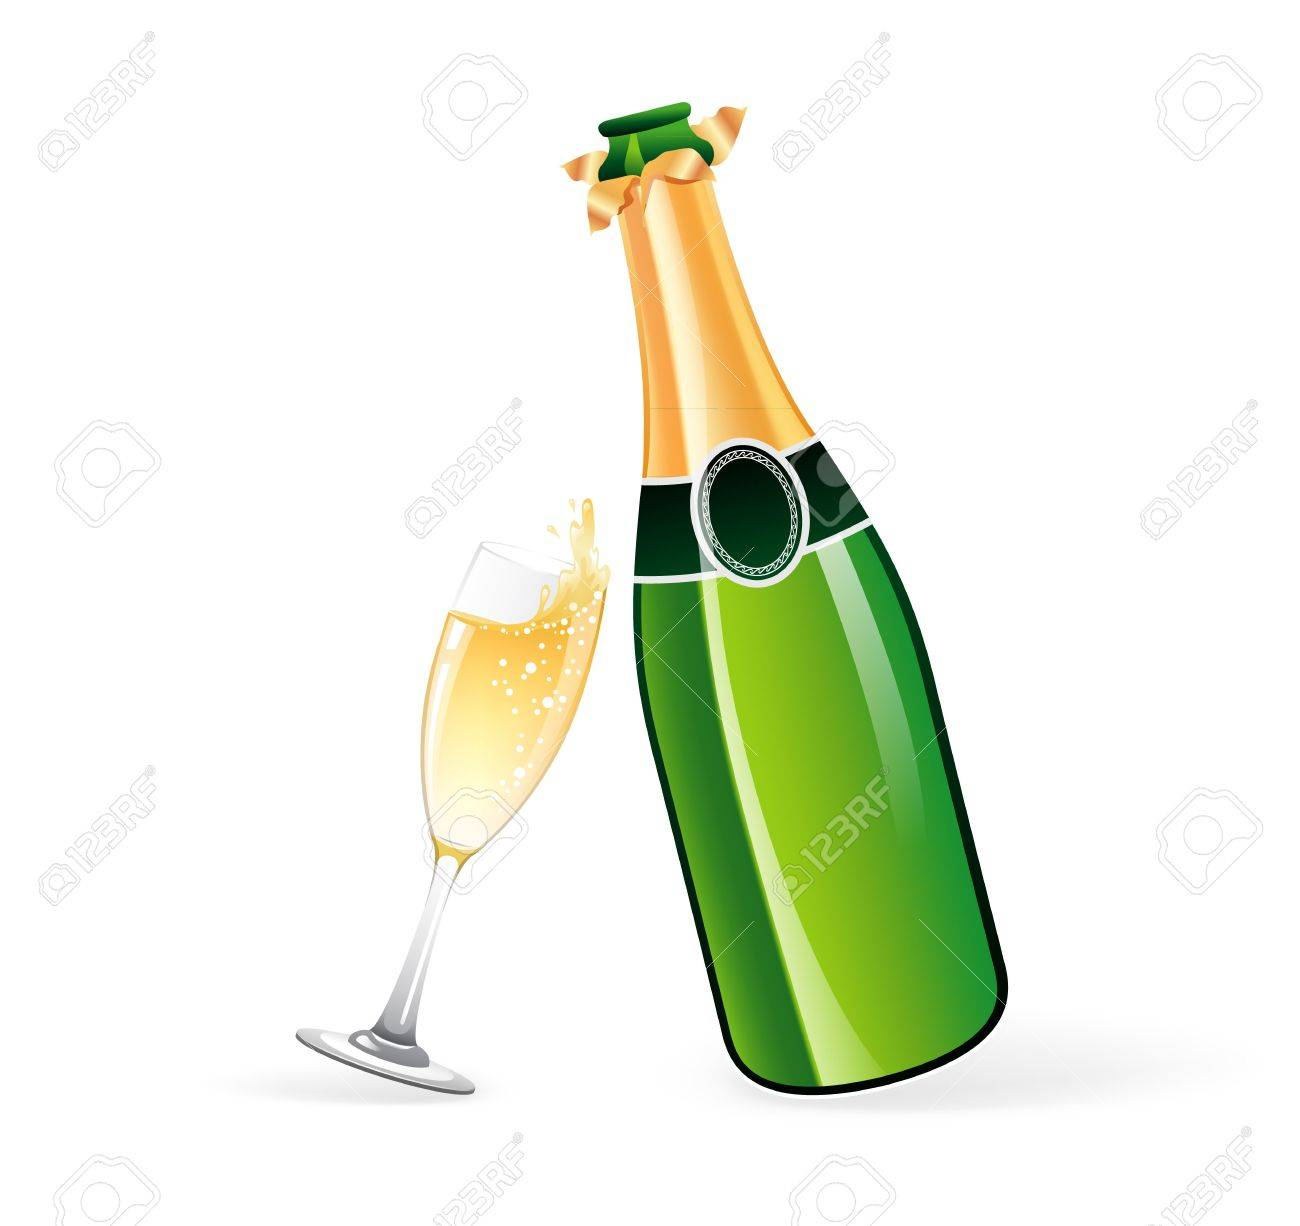 illustration of champagne bottle and glass royalty free cliparts rh 123rf com champagne bottle clipart champagne bottle clipart black and white